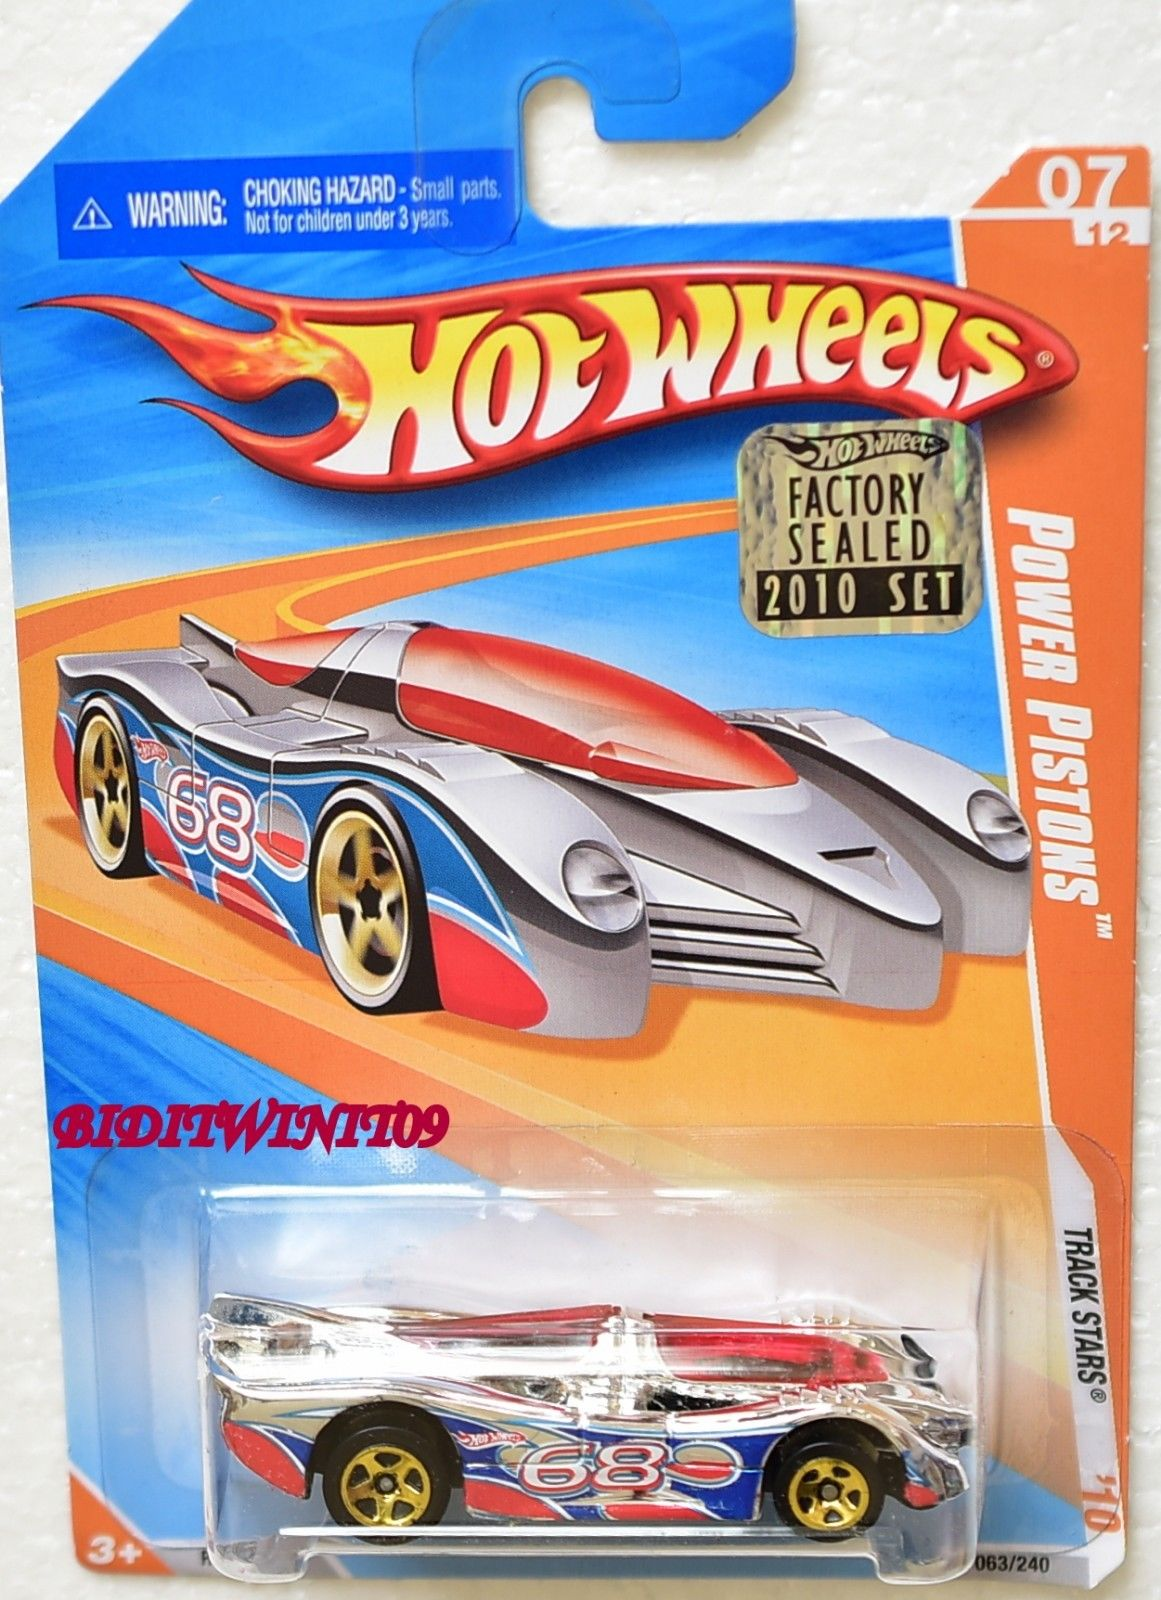 HOT WHEELS 2010 TRACK STARS POWER PISTONS #07/12 FACTORY SEALED